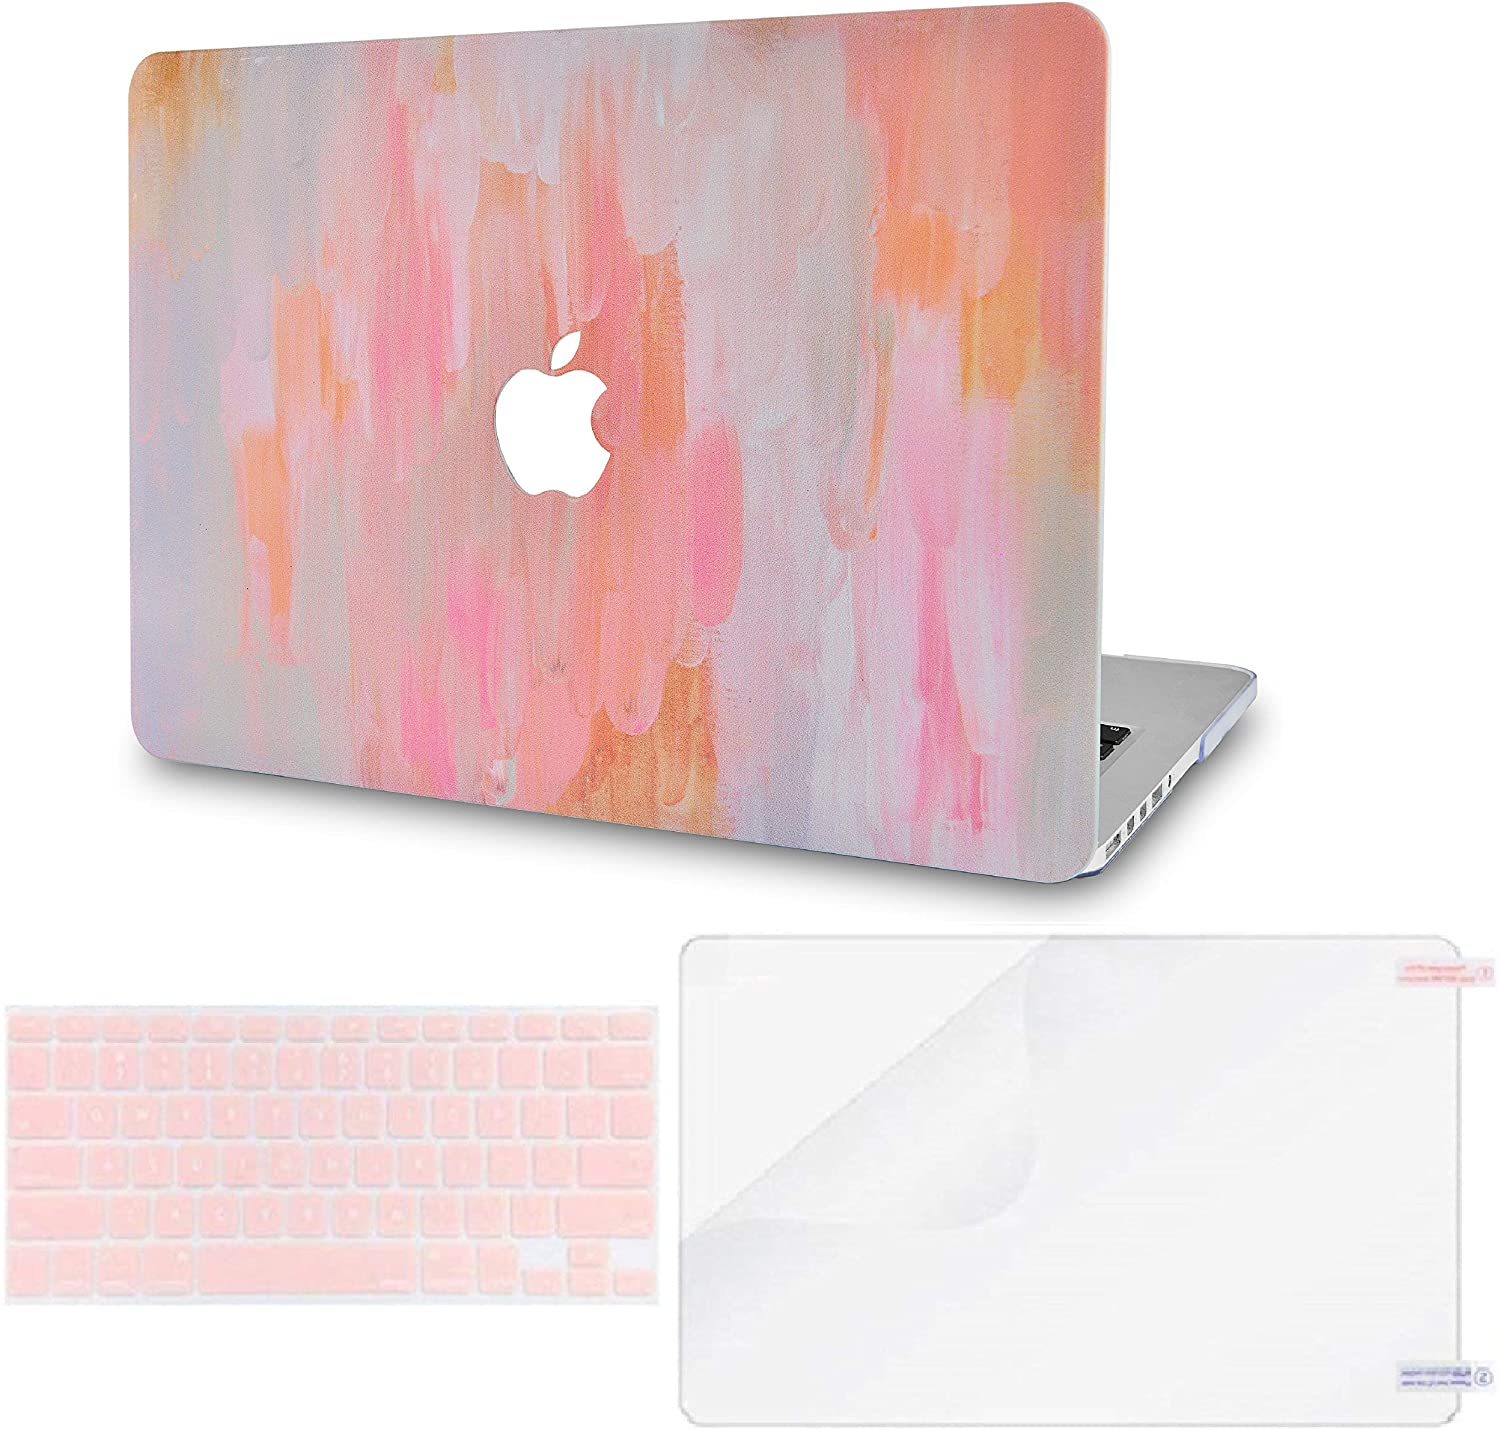 LuvCase 3 in 1 Laptop Case for MacBook Pro 16 Touch Bar (2020/2019) A2141 Hard Shell Cover, Keyboard Cover & Screen Protector (Mist 13)